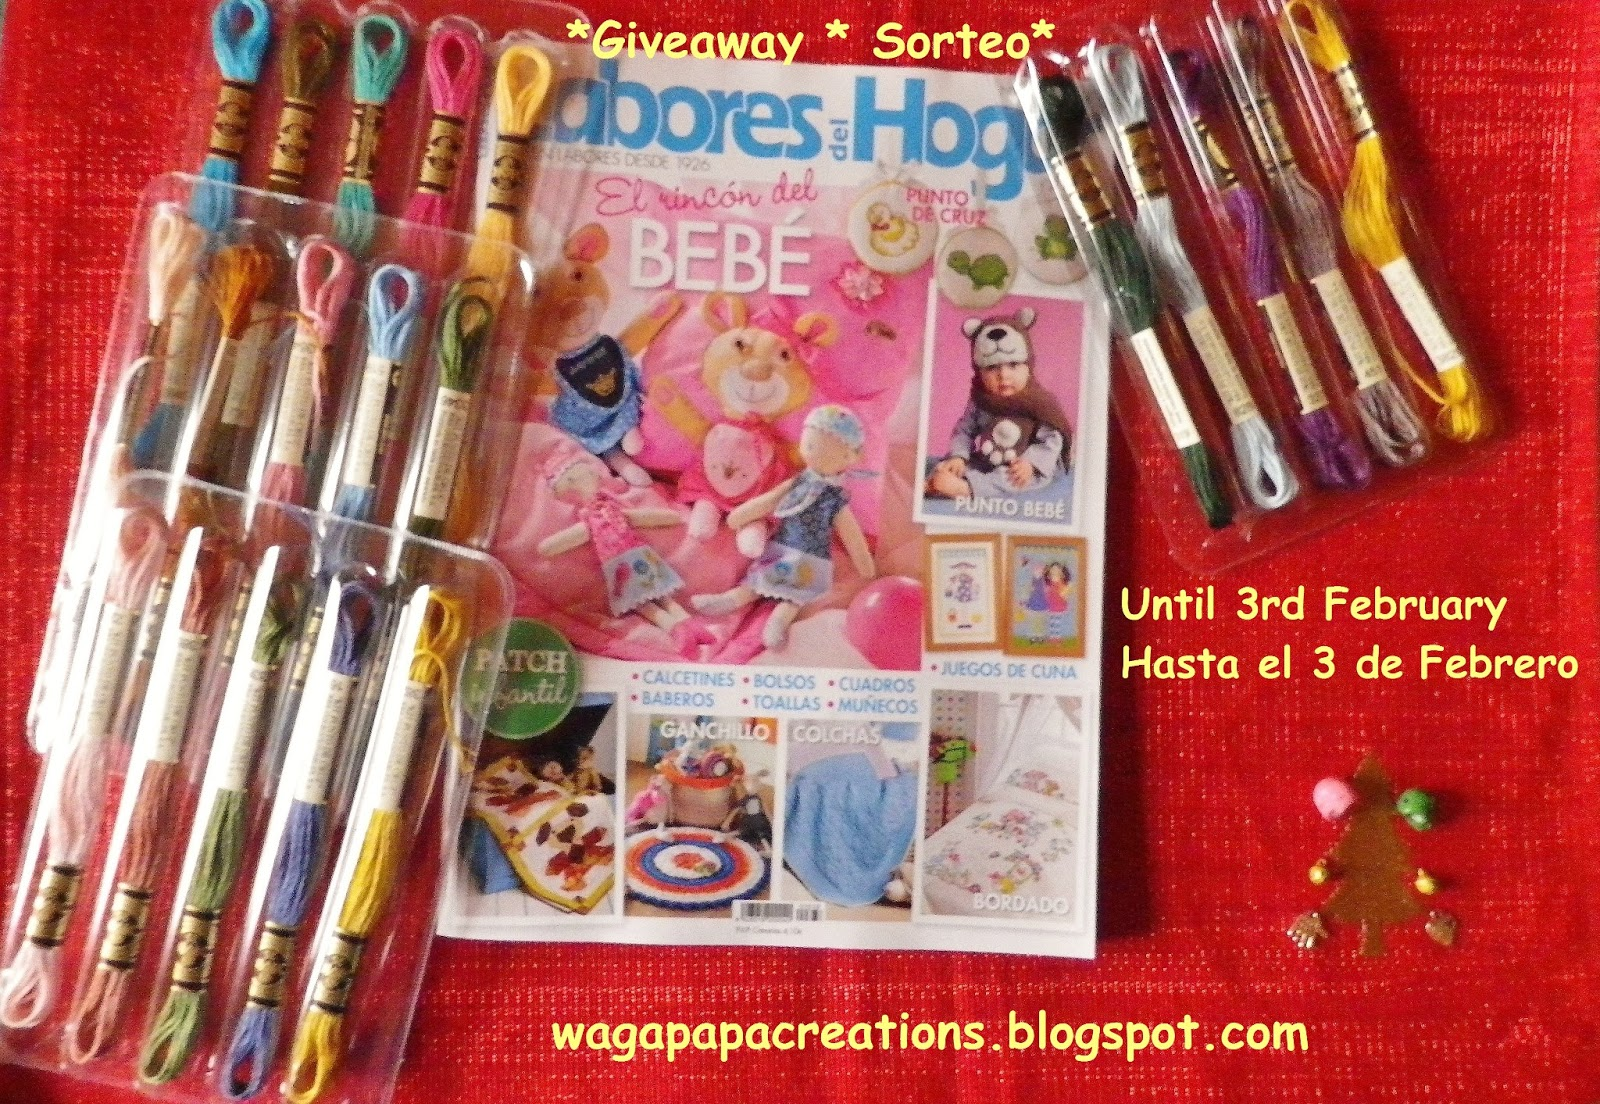 SORTEO EN WAGAPAPA CREATIONS